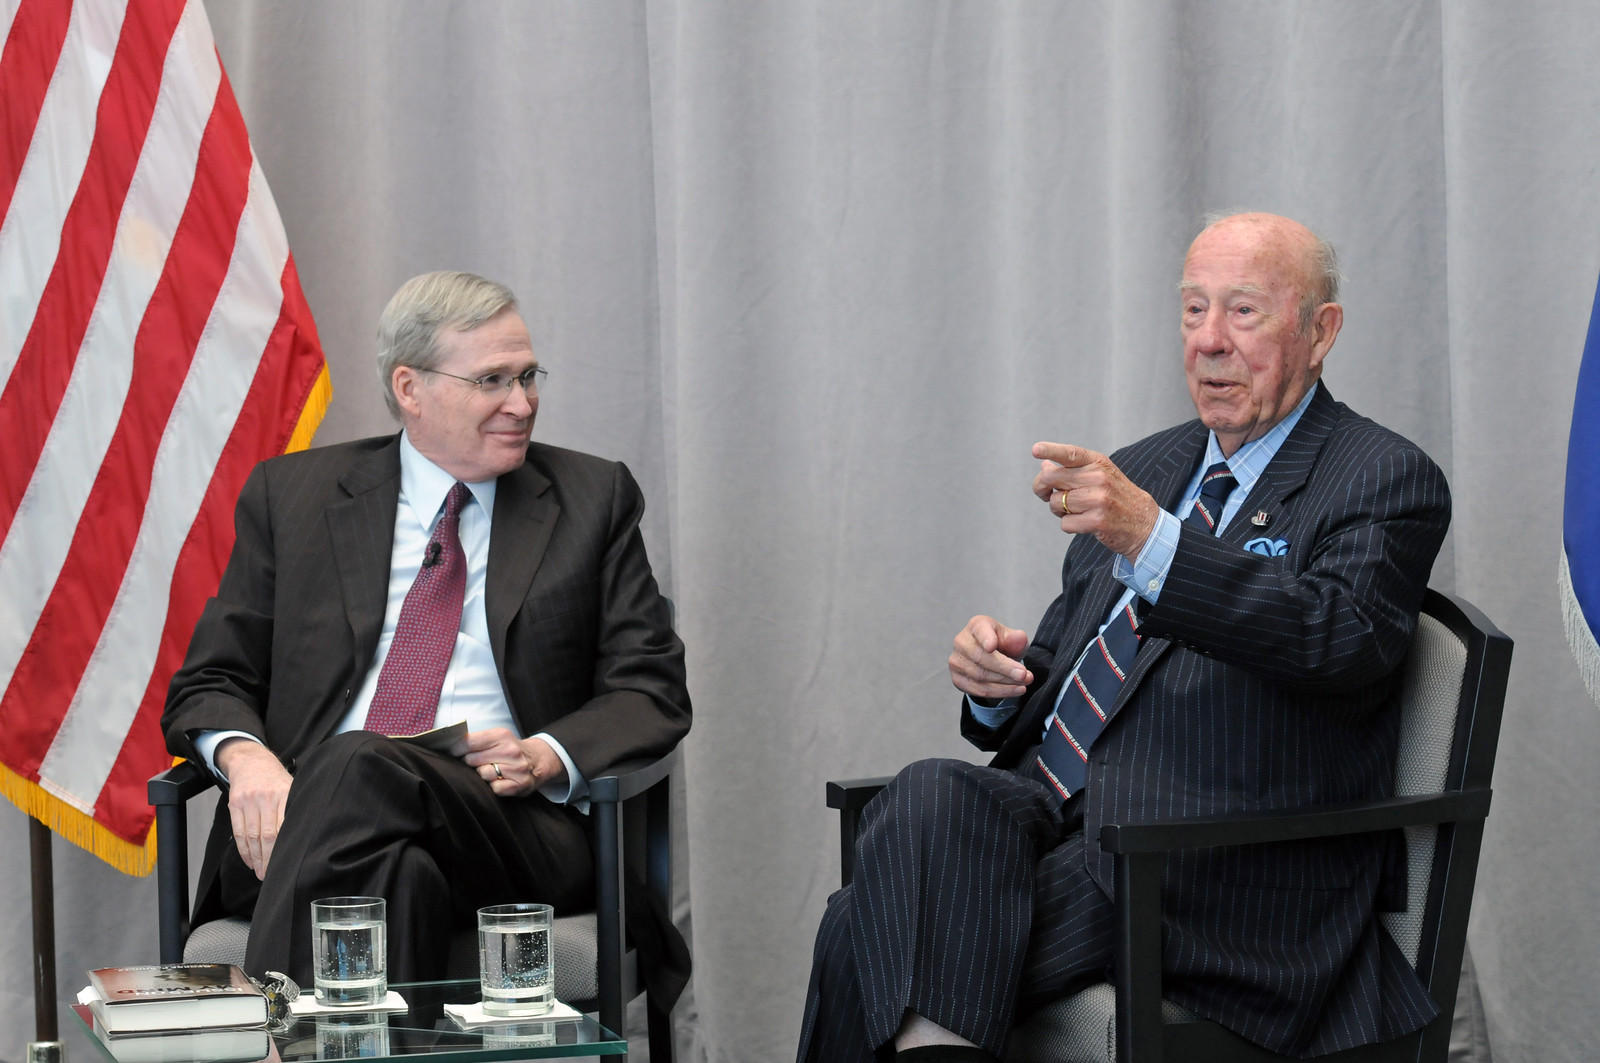 USIP Board Chair Stephen J. Hadley and former Secretary of State George P. Shultz